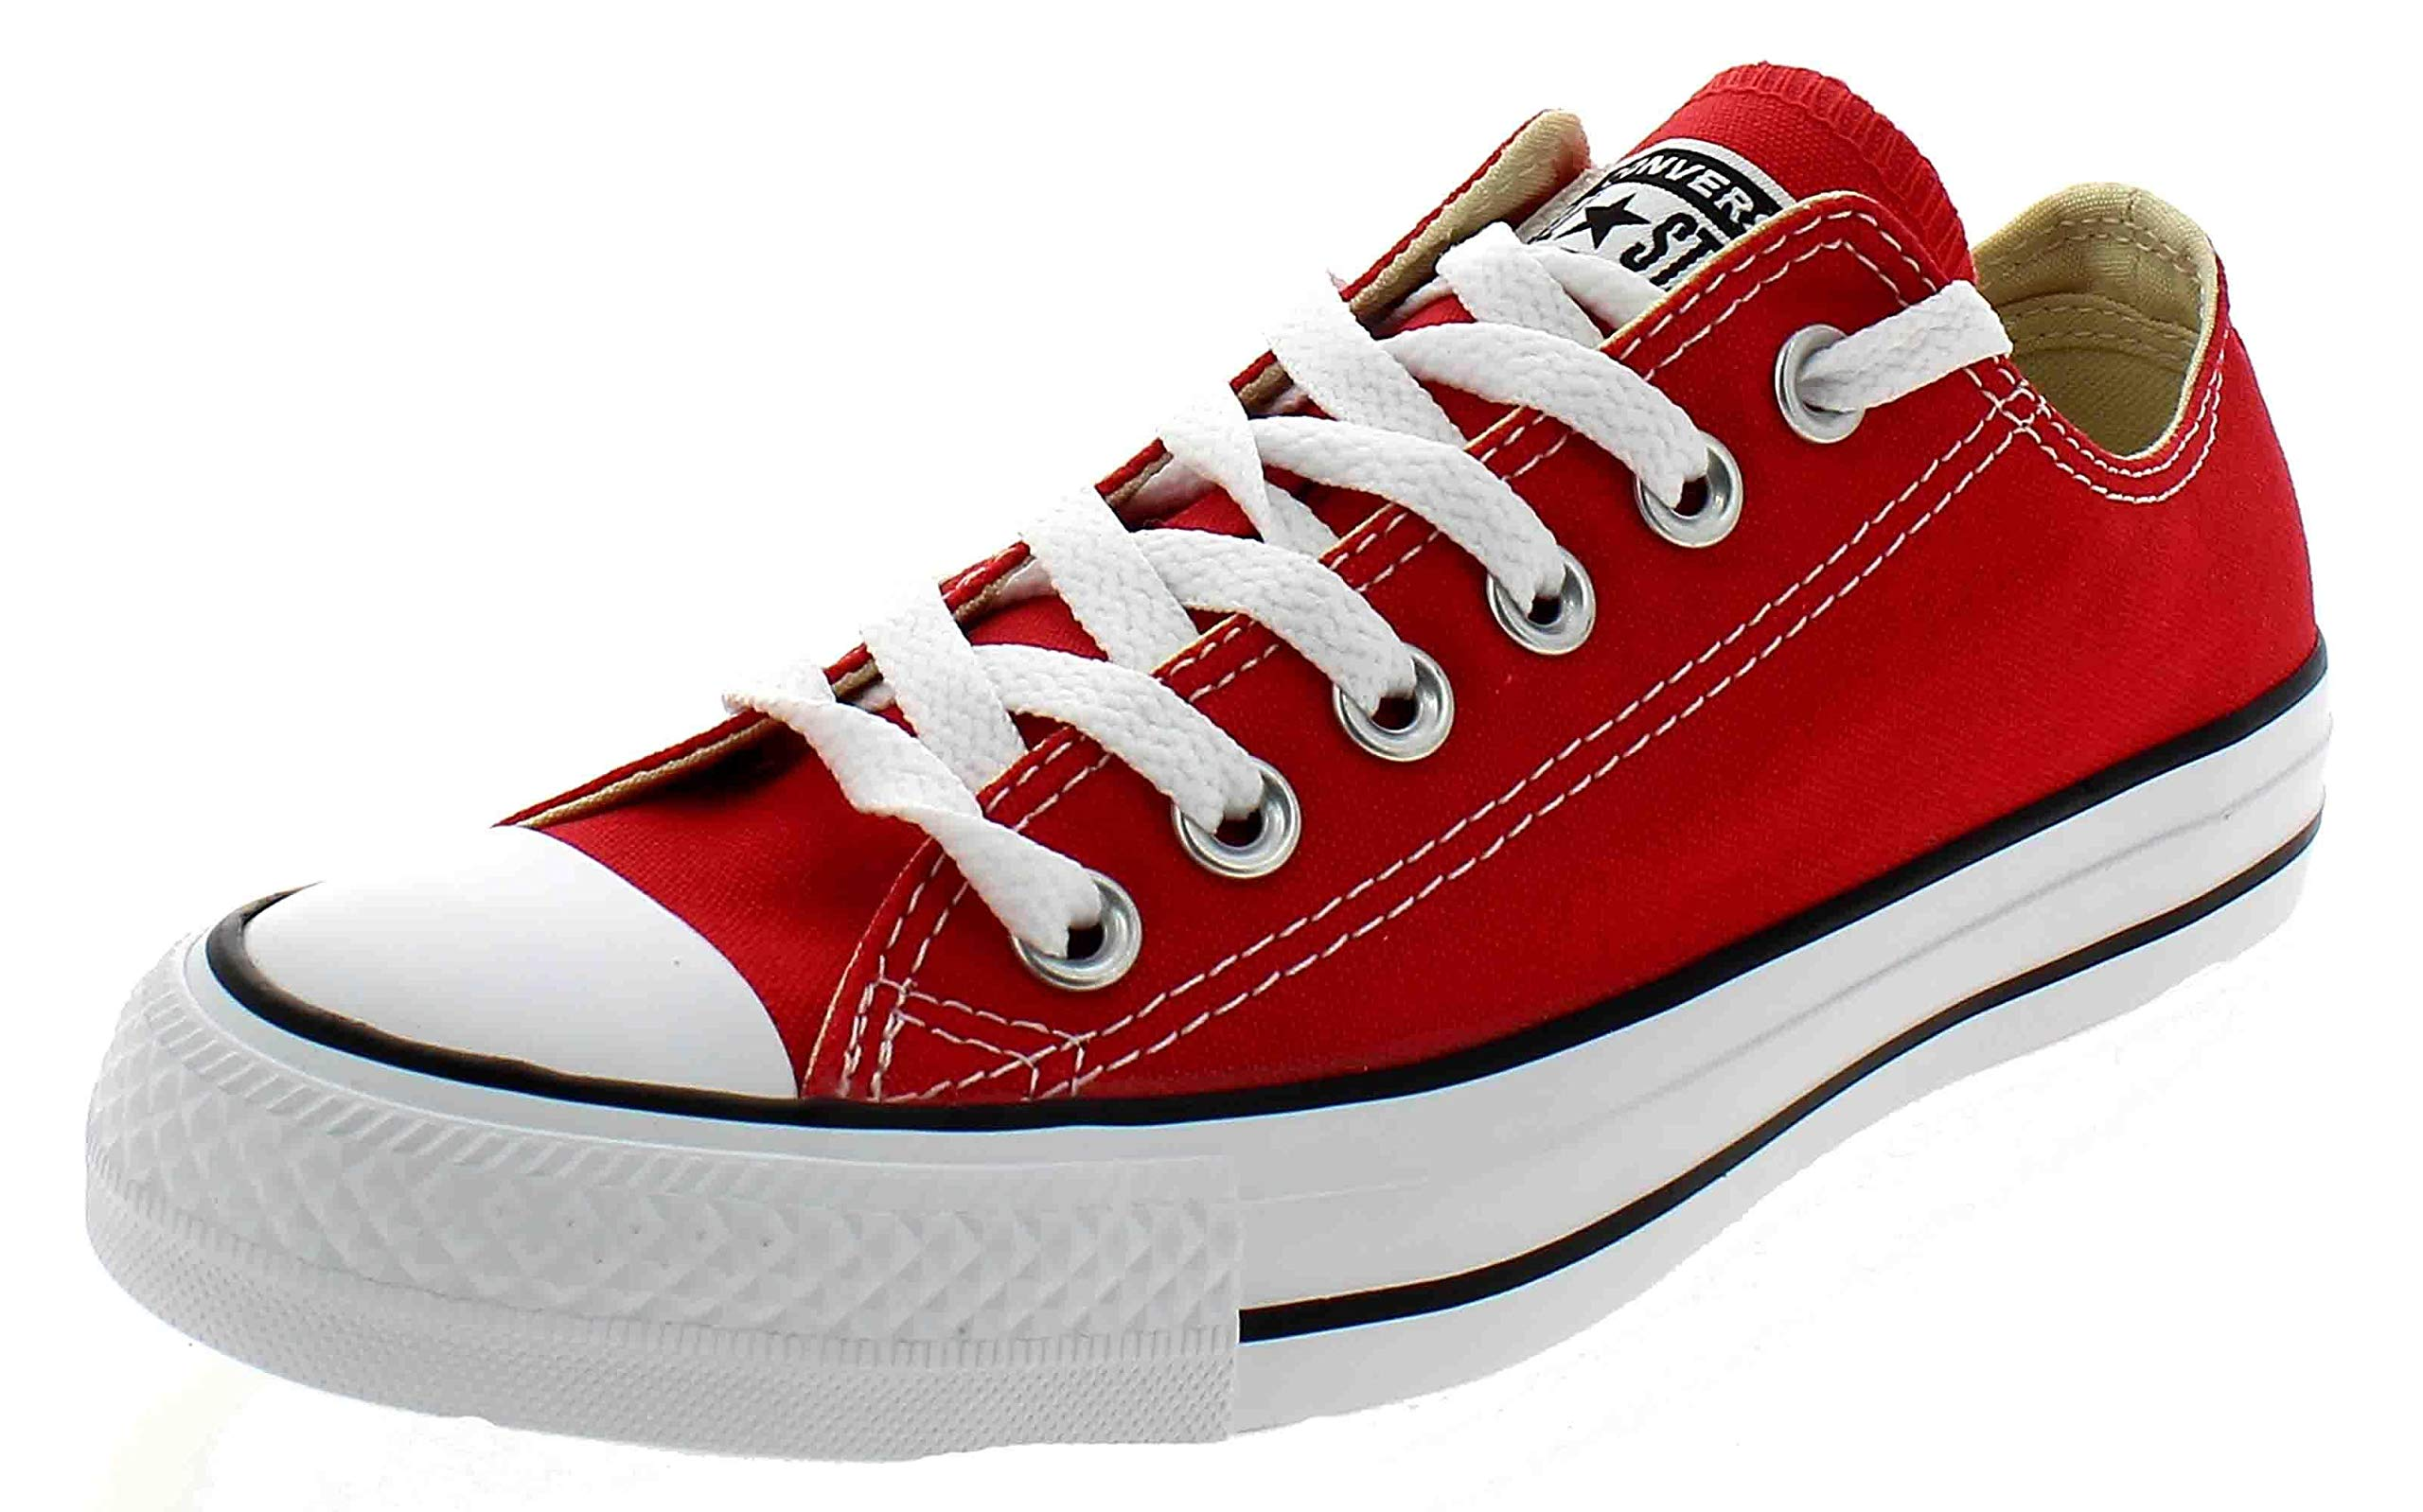 Chuck Taylor All Star Canvas Low Top Sneaker,Red,4.5 US Men/6.5 US Women